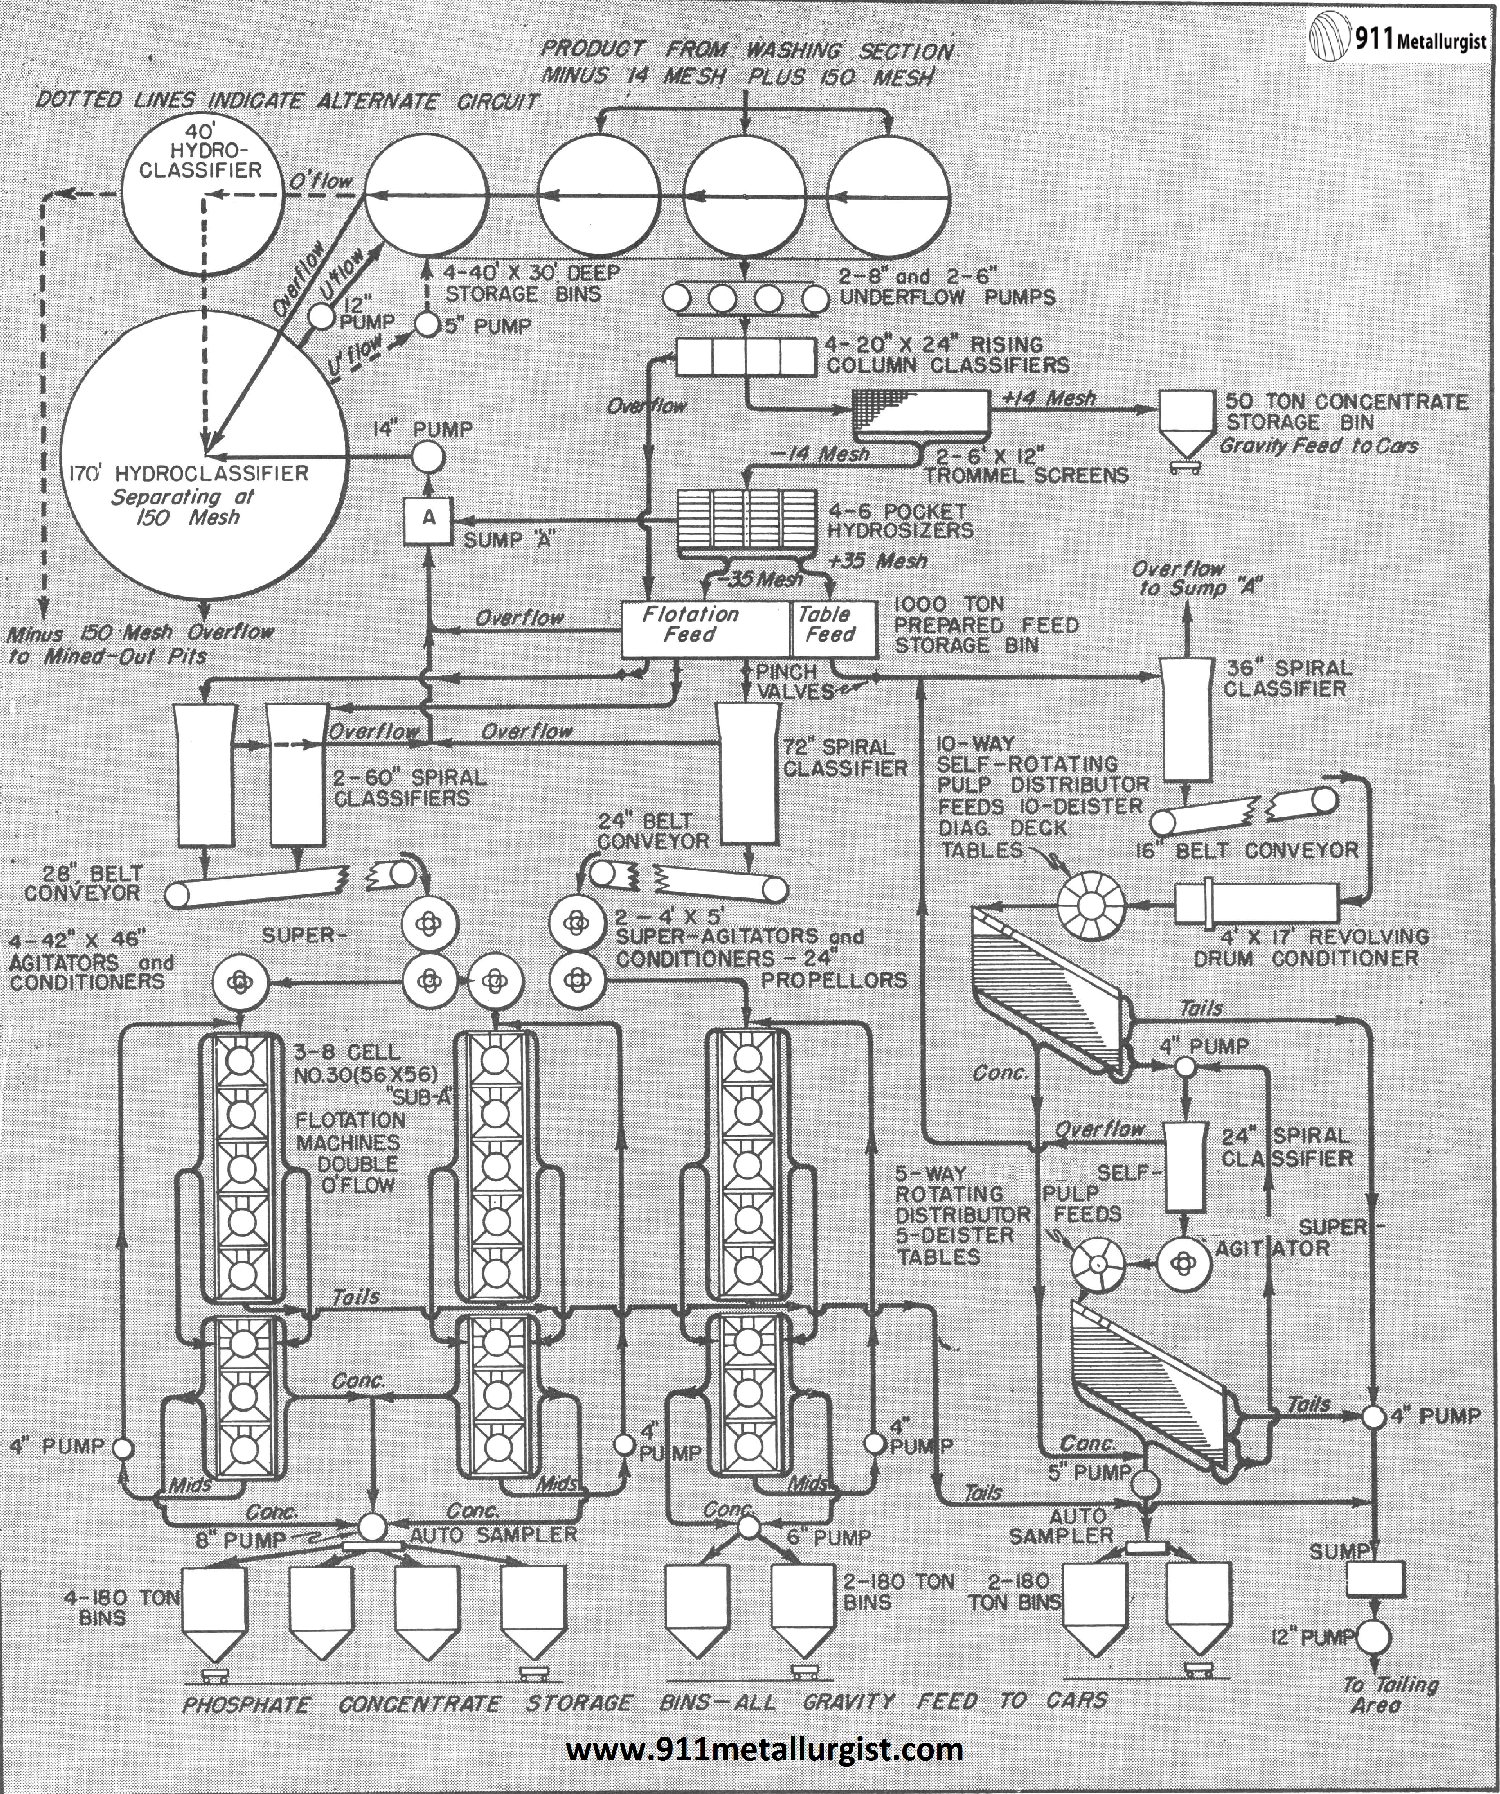 Flow-Sheet of a Florida Phosphate Plant Recovering